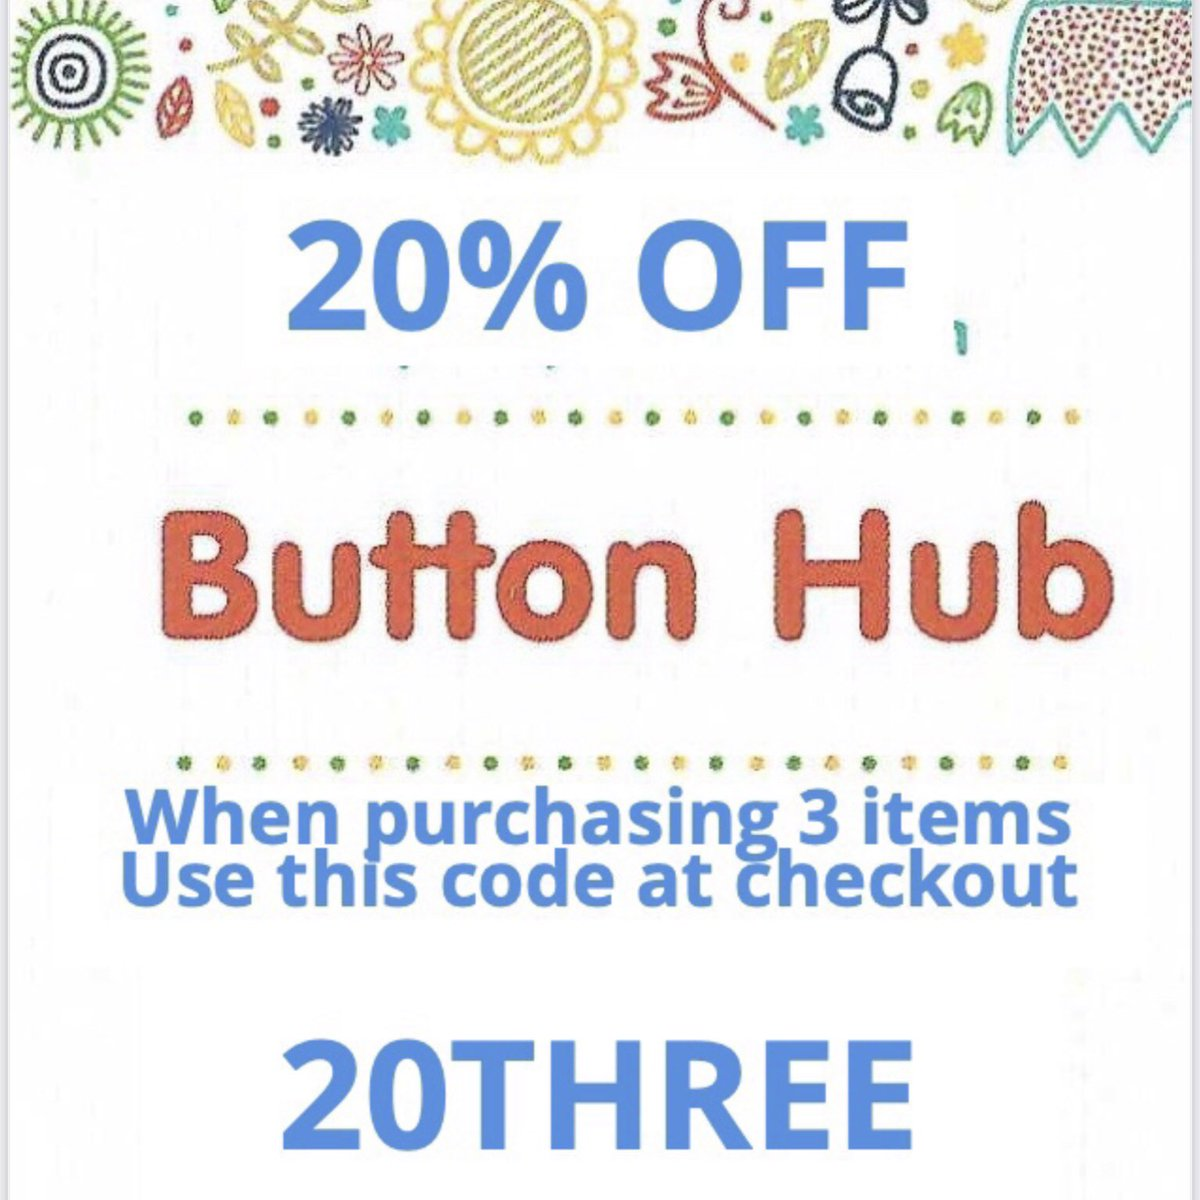 🥳National Button Day everyone so buy 3 packs of buttons and get 20% off, use code 20THREE at the checkout 🥳  #nationalbuttonday #NationalButtonDay #button #ButtonDay #buttons #MondayMotivation